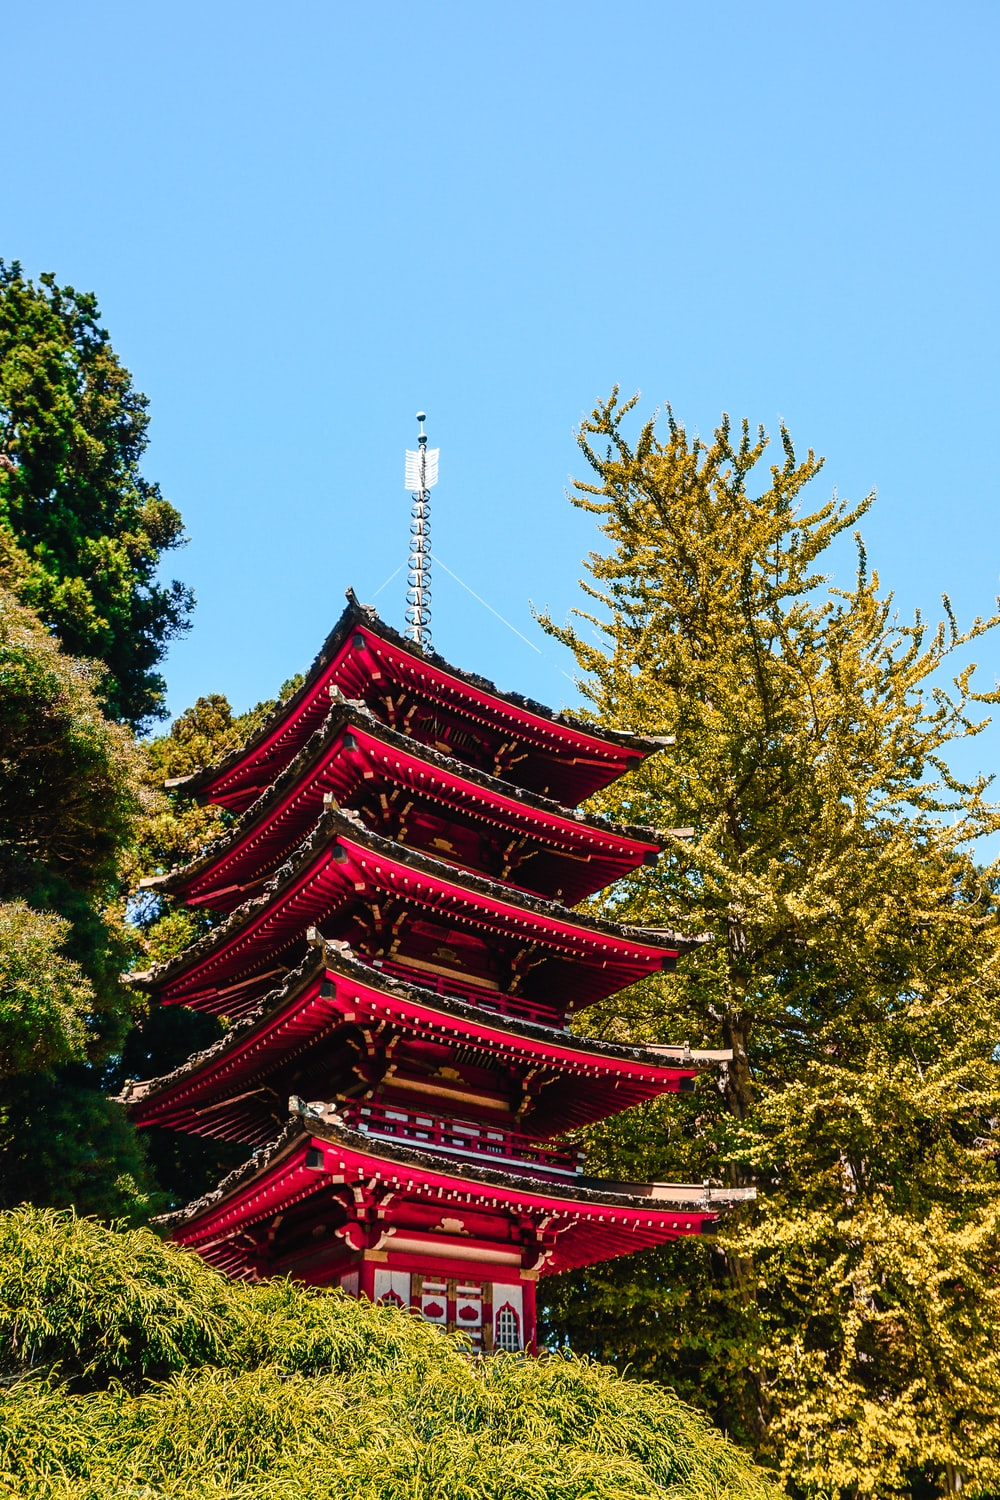 red and green multi-layer pagoda temple under calm blue sky